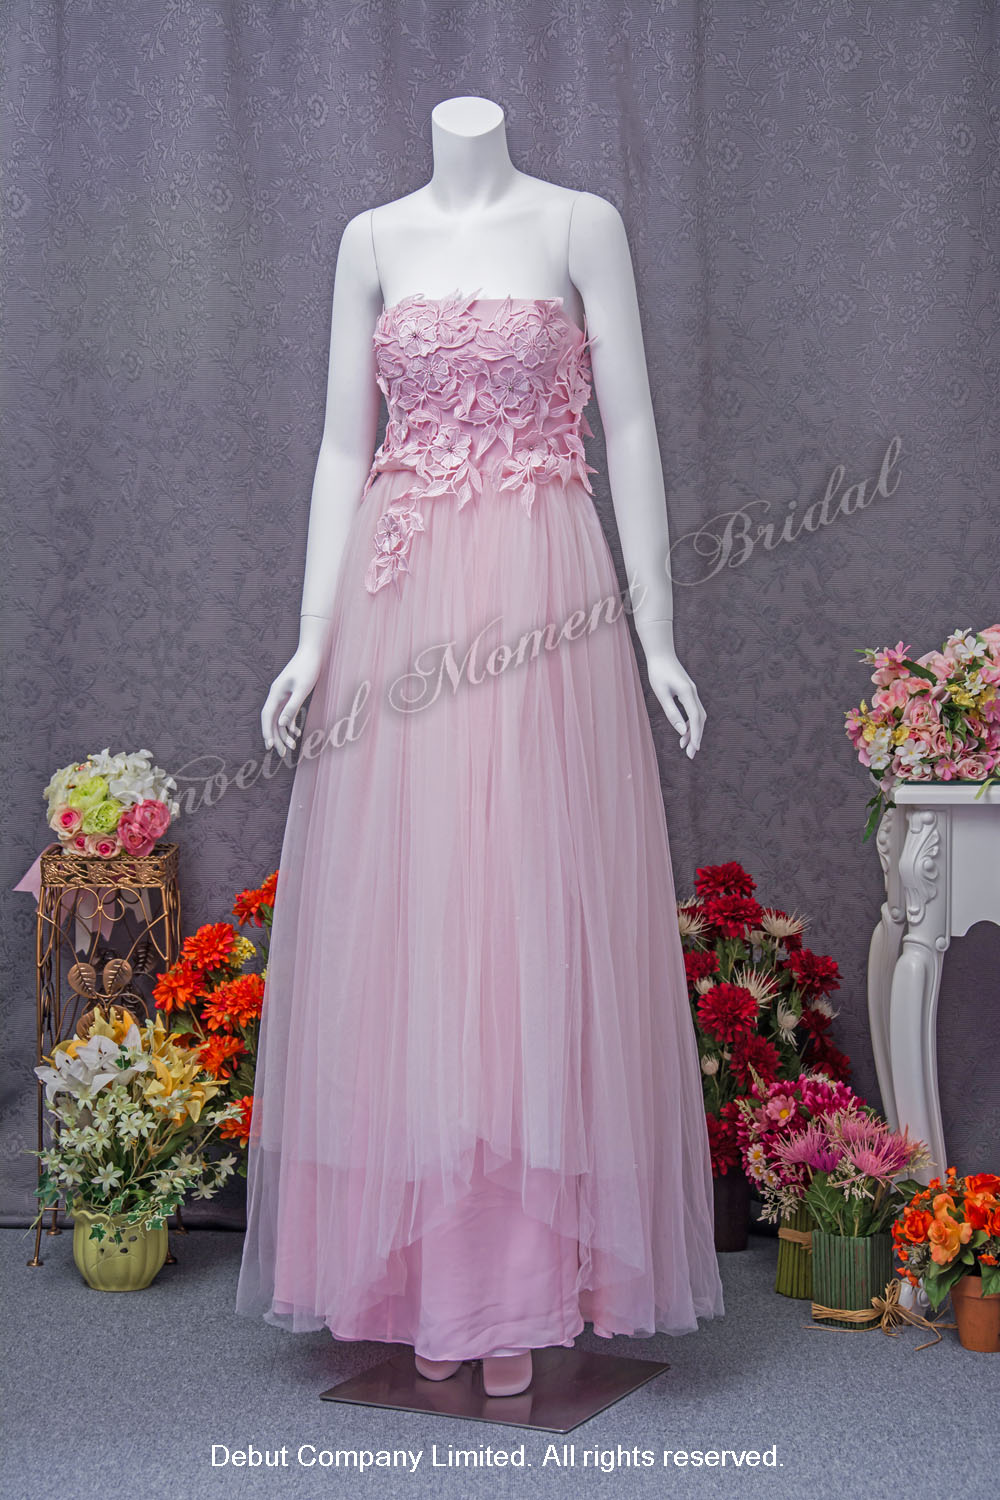 Pink, strapless party dress with lace and crystal embellishments 粉紅色, 無肩帶, 蕾絲及水晶裝飾, 多層輕紗裙擺宴會晚裝裙